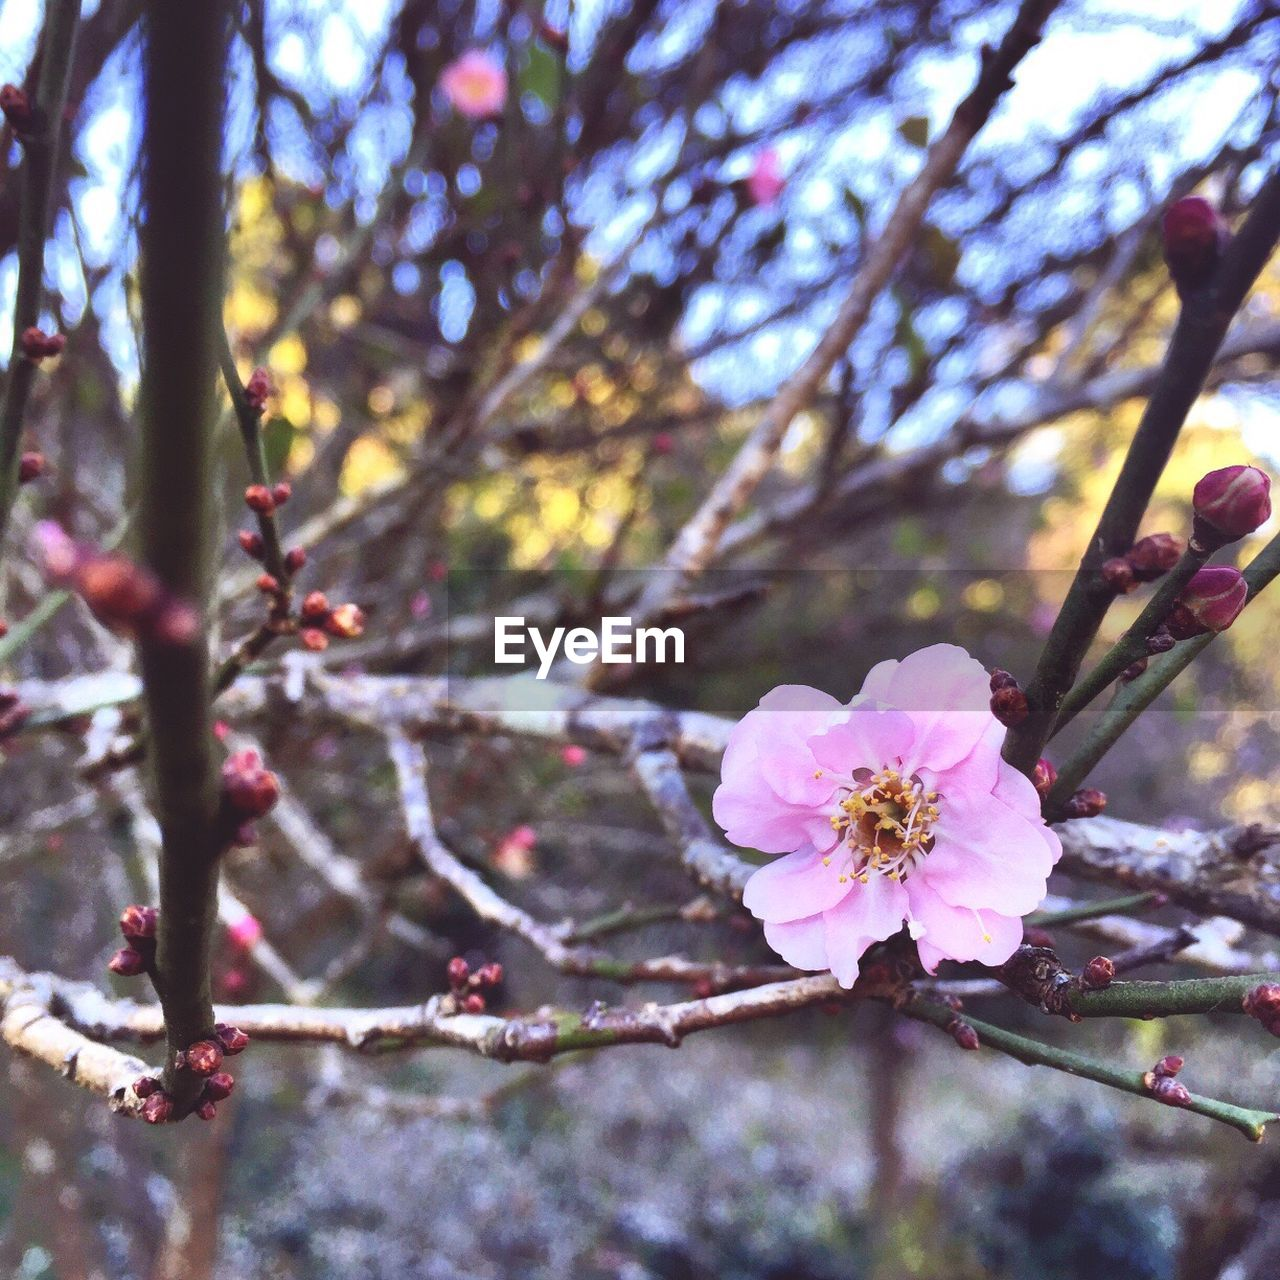 flower, tree, nature, branch, fragility, beauty in nature, growth, blossom, day, outdoors, twig, springtime, apple blossom, petal, freshness, pink color, no people, plum blossom, close-up, flower head, stamen, blooming